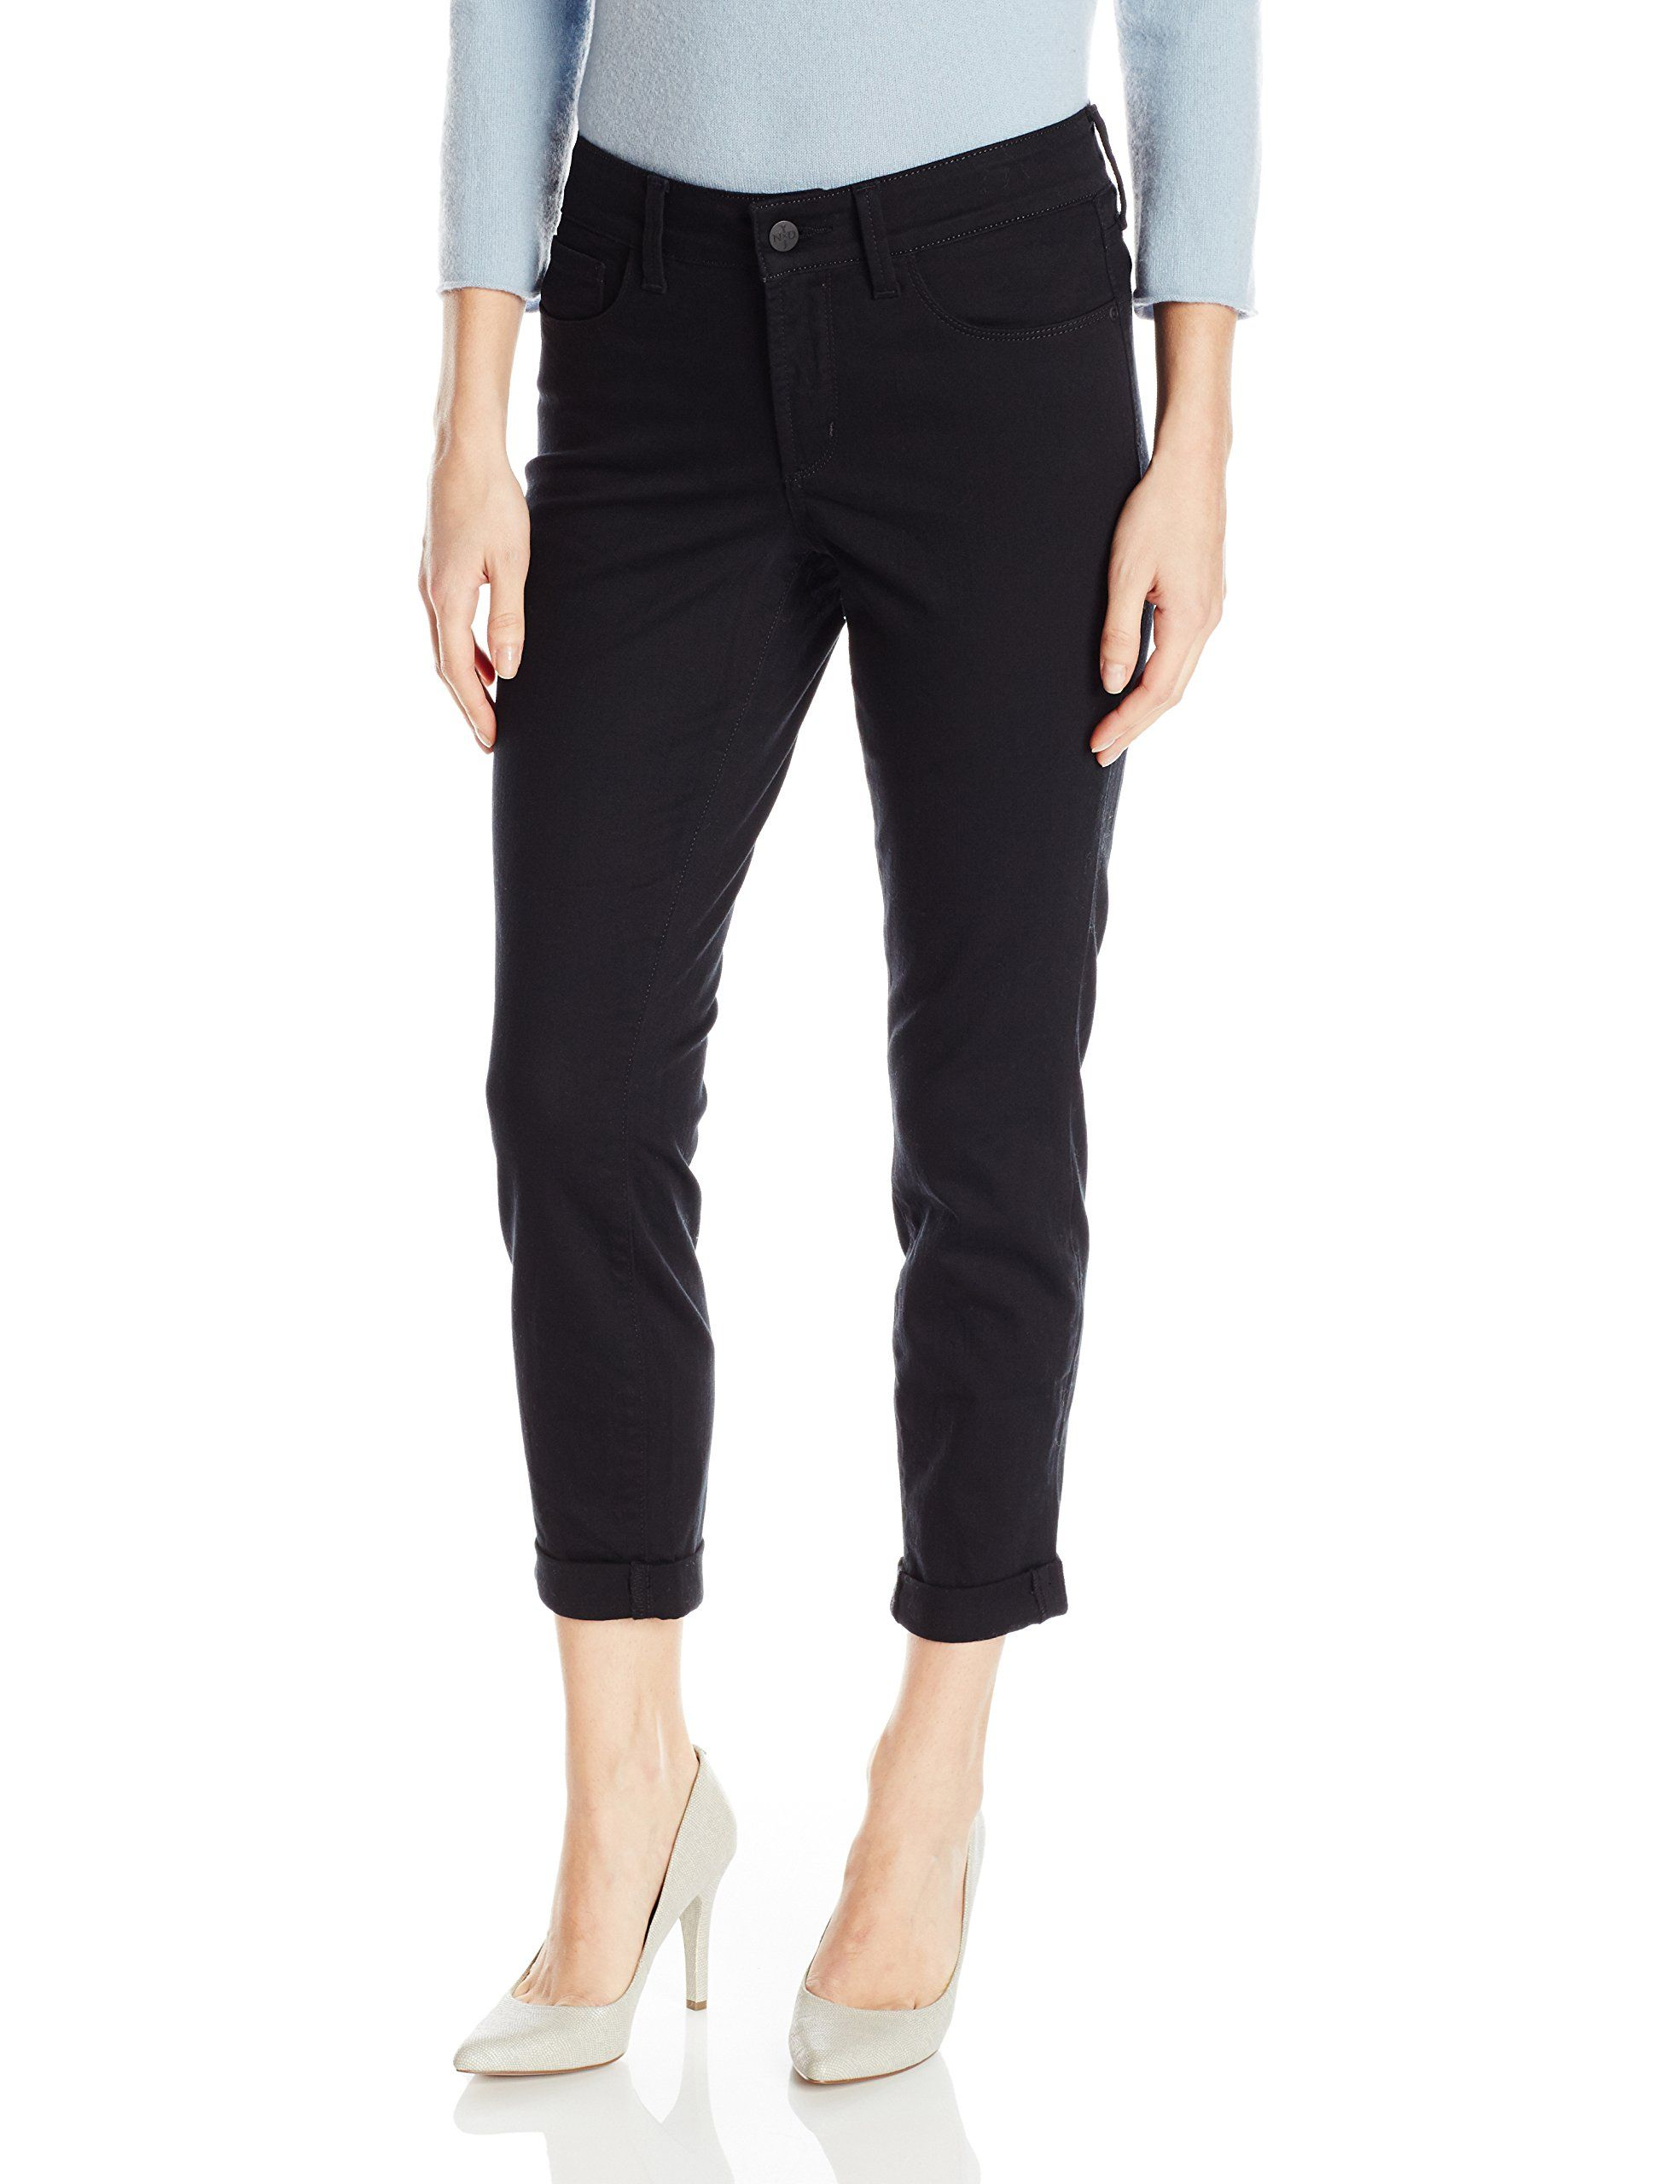 NYDJ Womens Petite Size Alina Skinny Convertible Ankle Jeans Black 12 **  Click image to